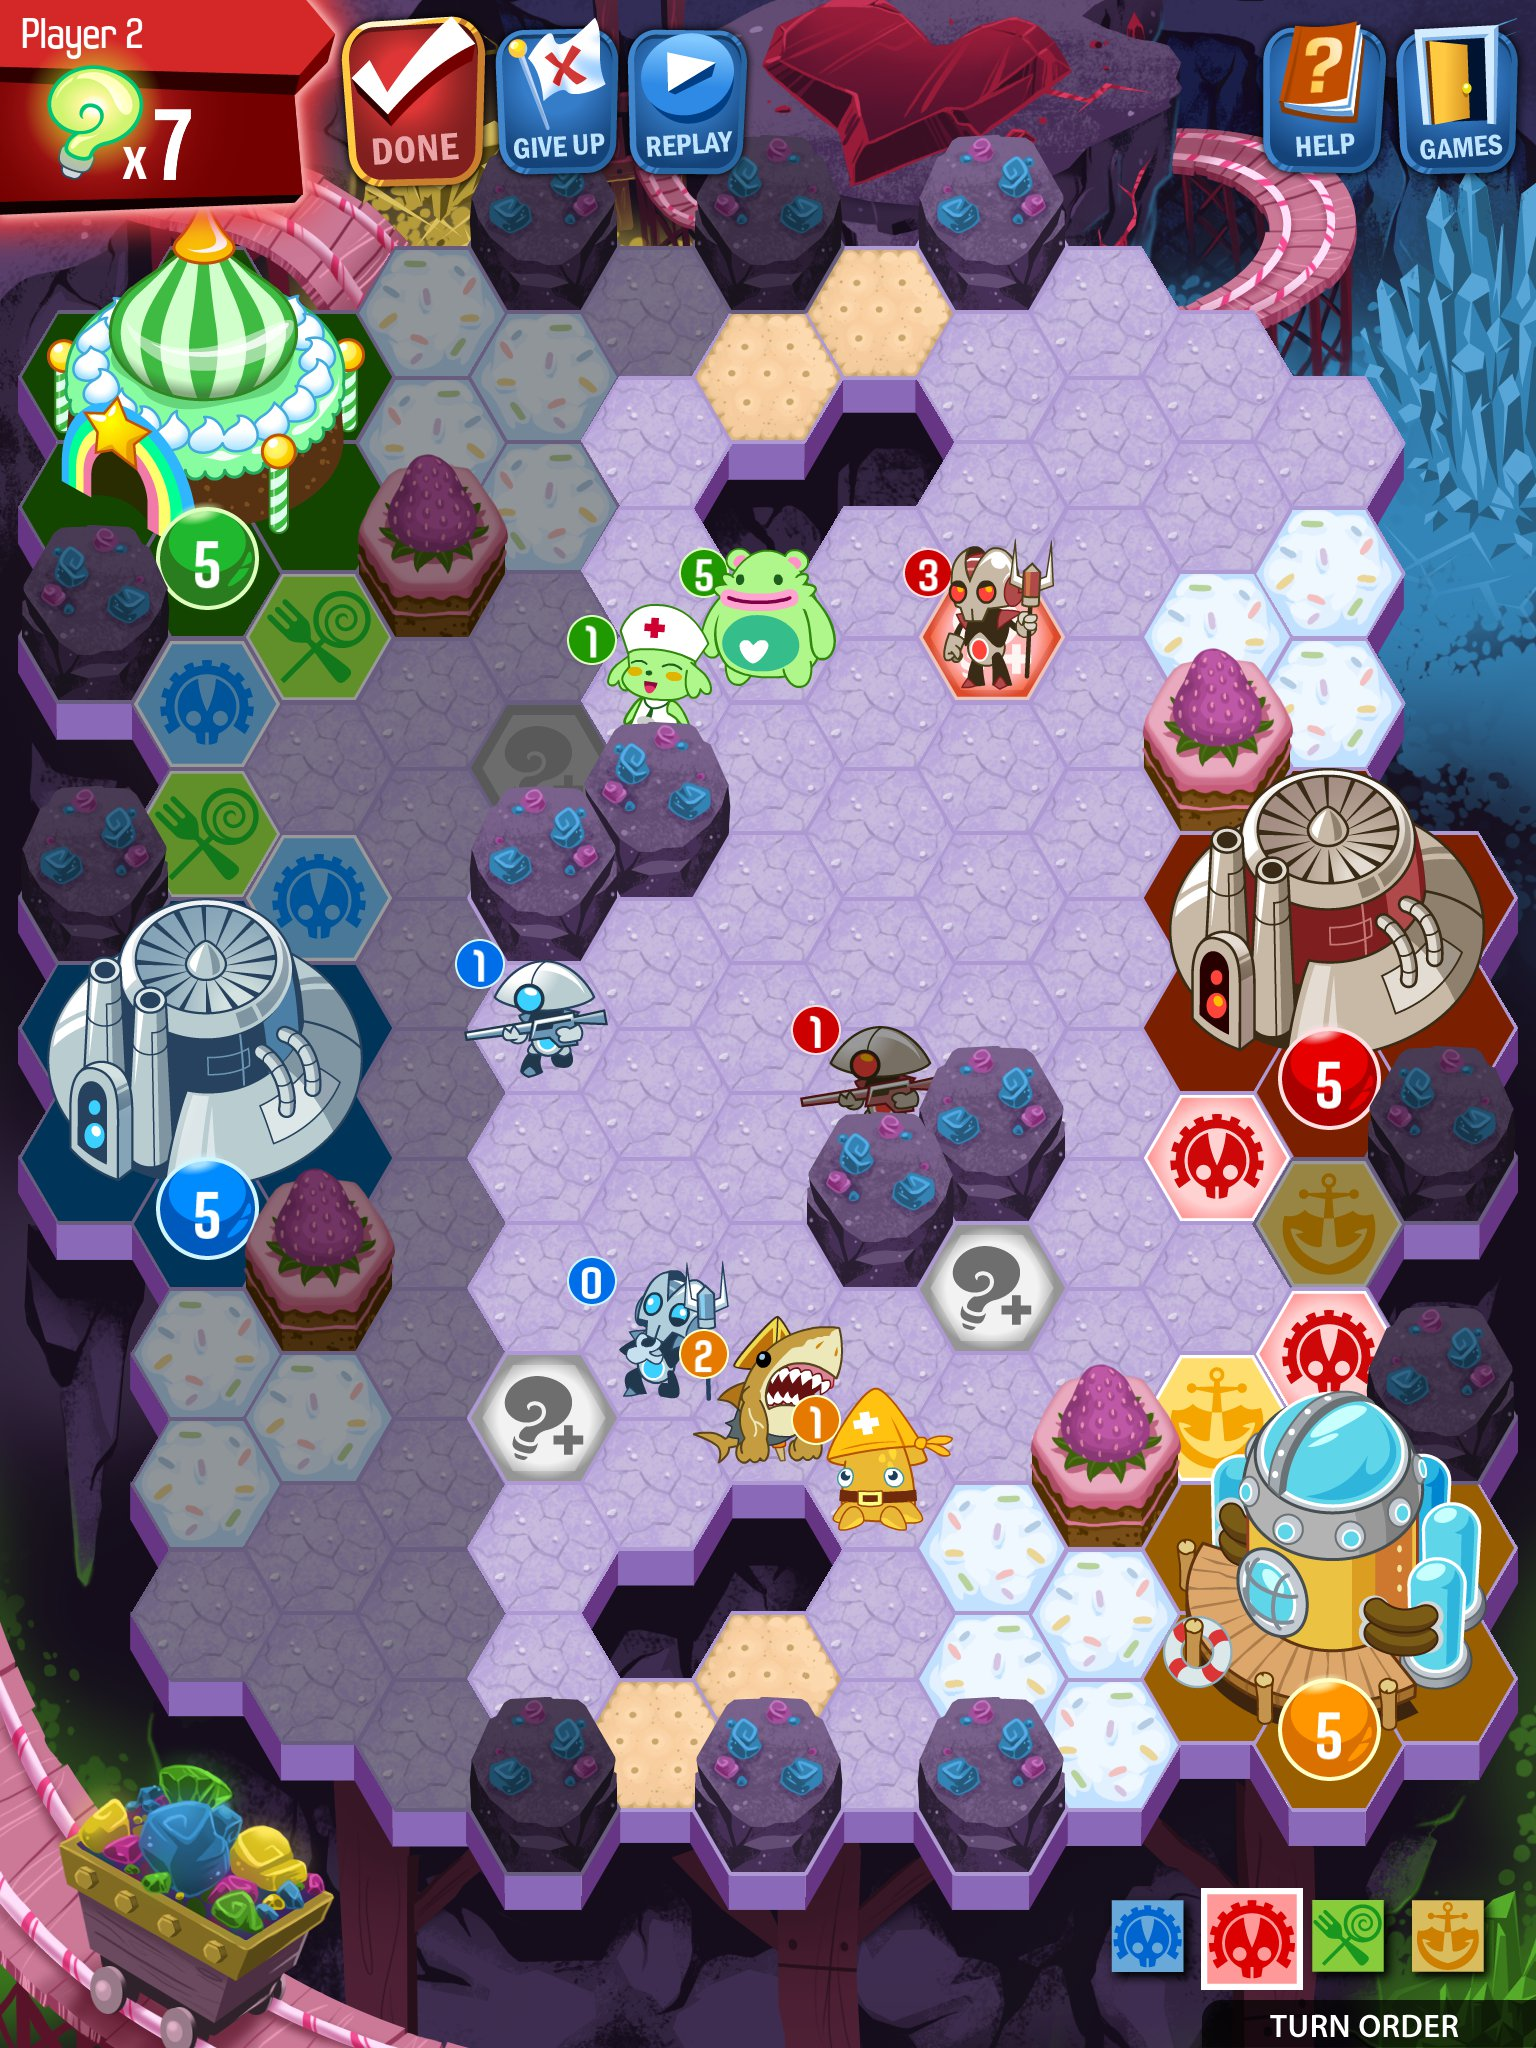 Multiplayer strategy battler Outwitters gains an extra team, new maps, and more in massive update